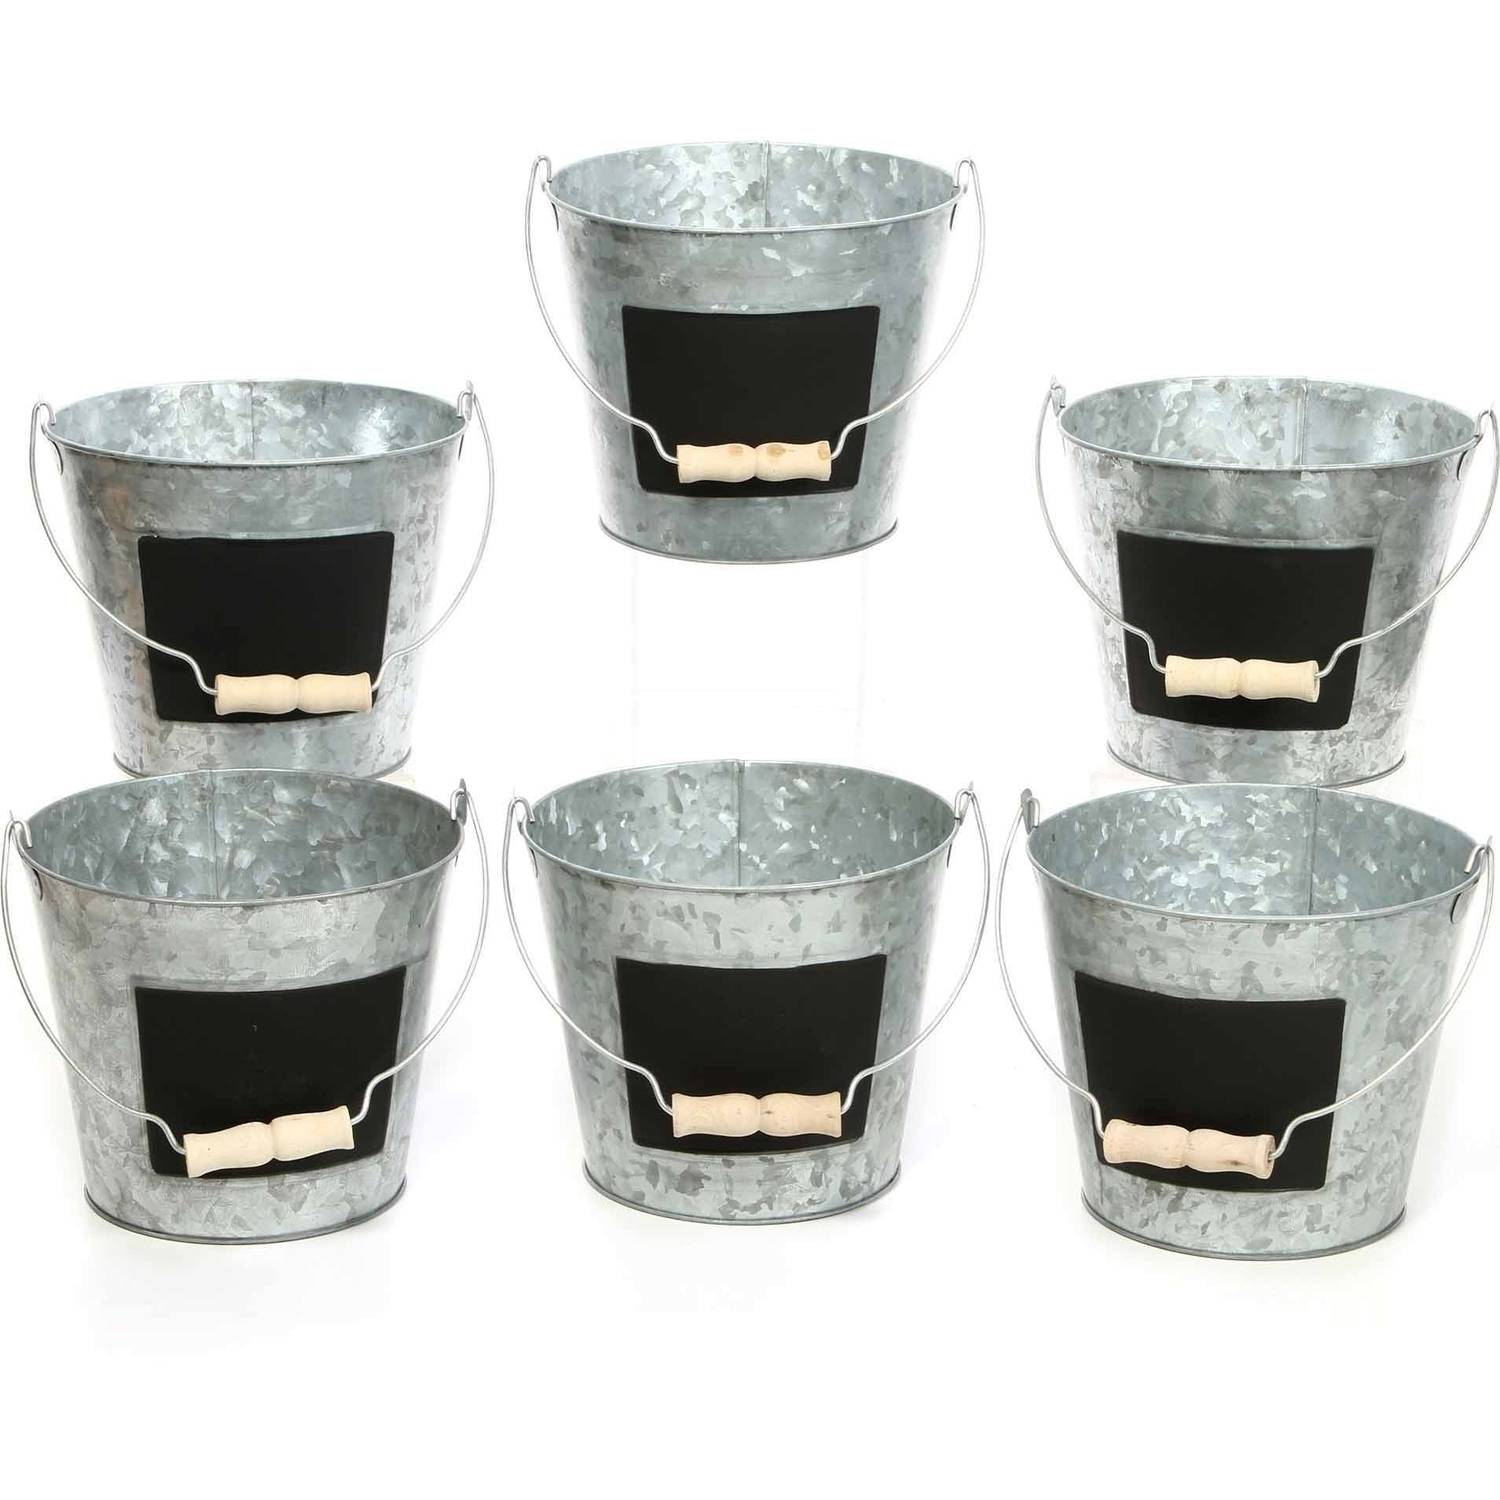 Elegant Expressions by Hosley Metal Pails With Chalkboard, Set of 6